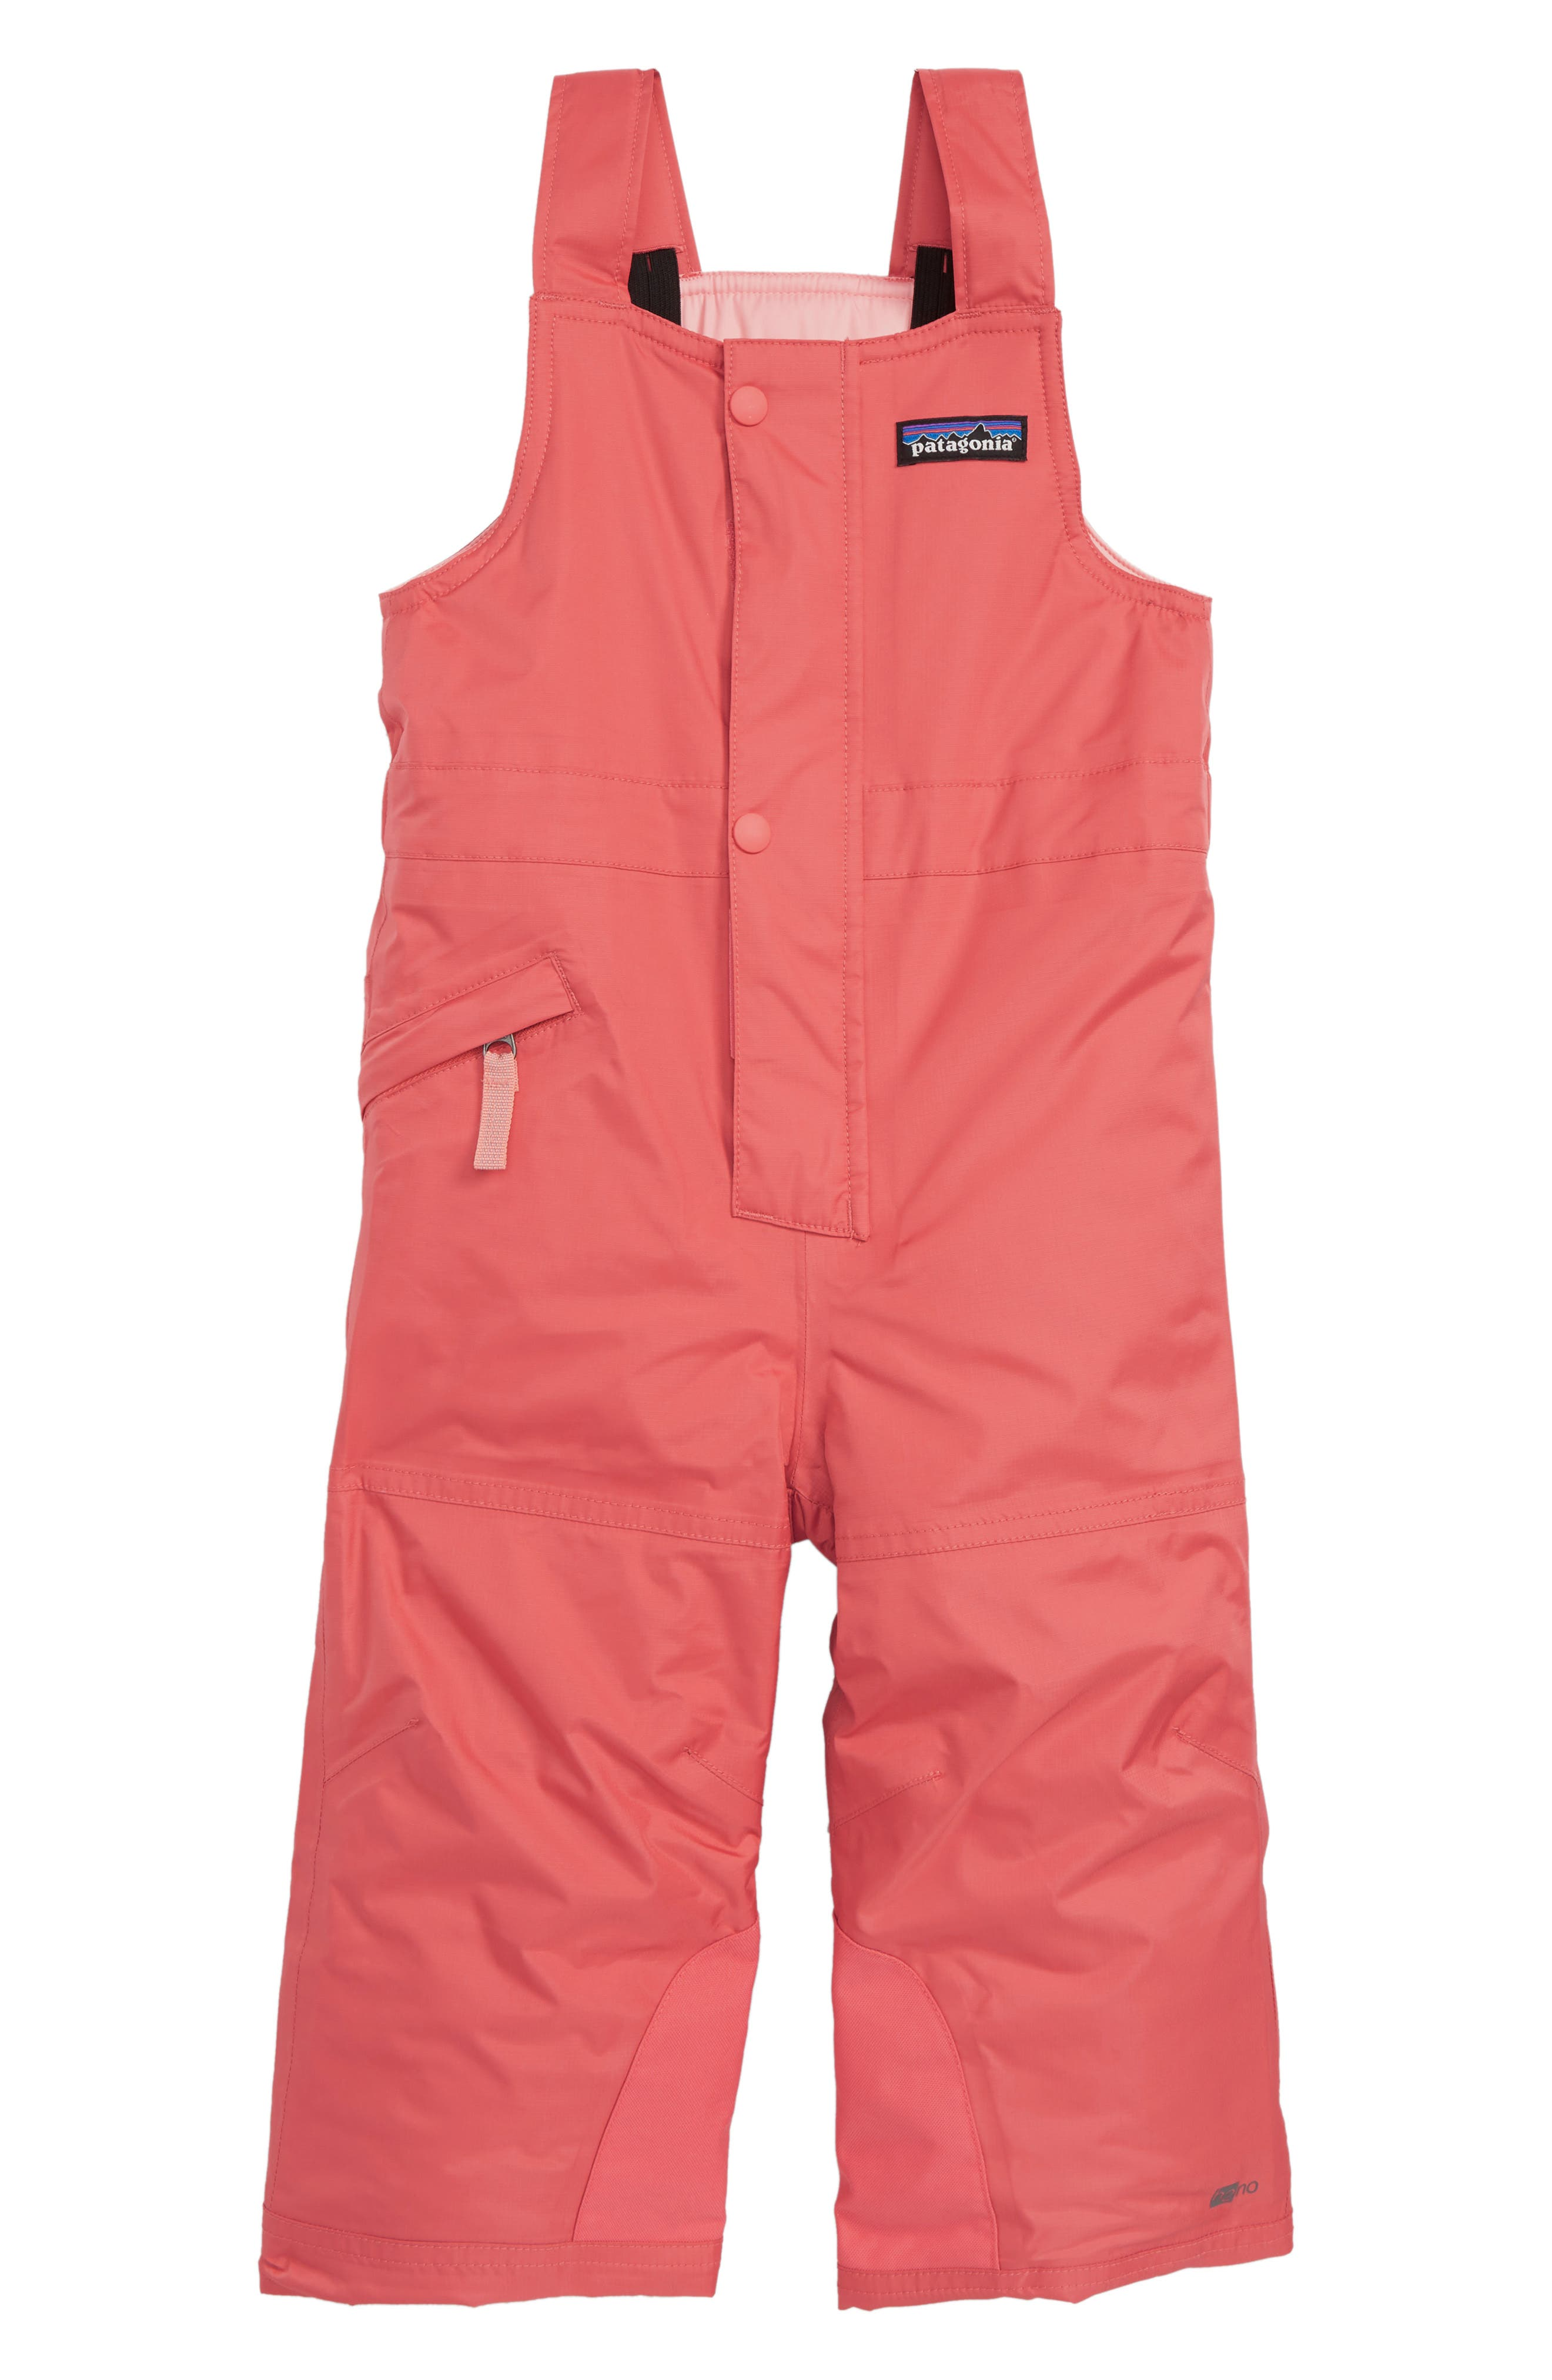 Snow Pile Waterproof Insulated Bib Overalls,                             Main thumbnail 1, color,                             SPCL SPICED CORAL